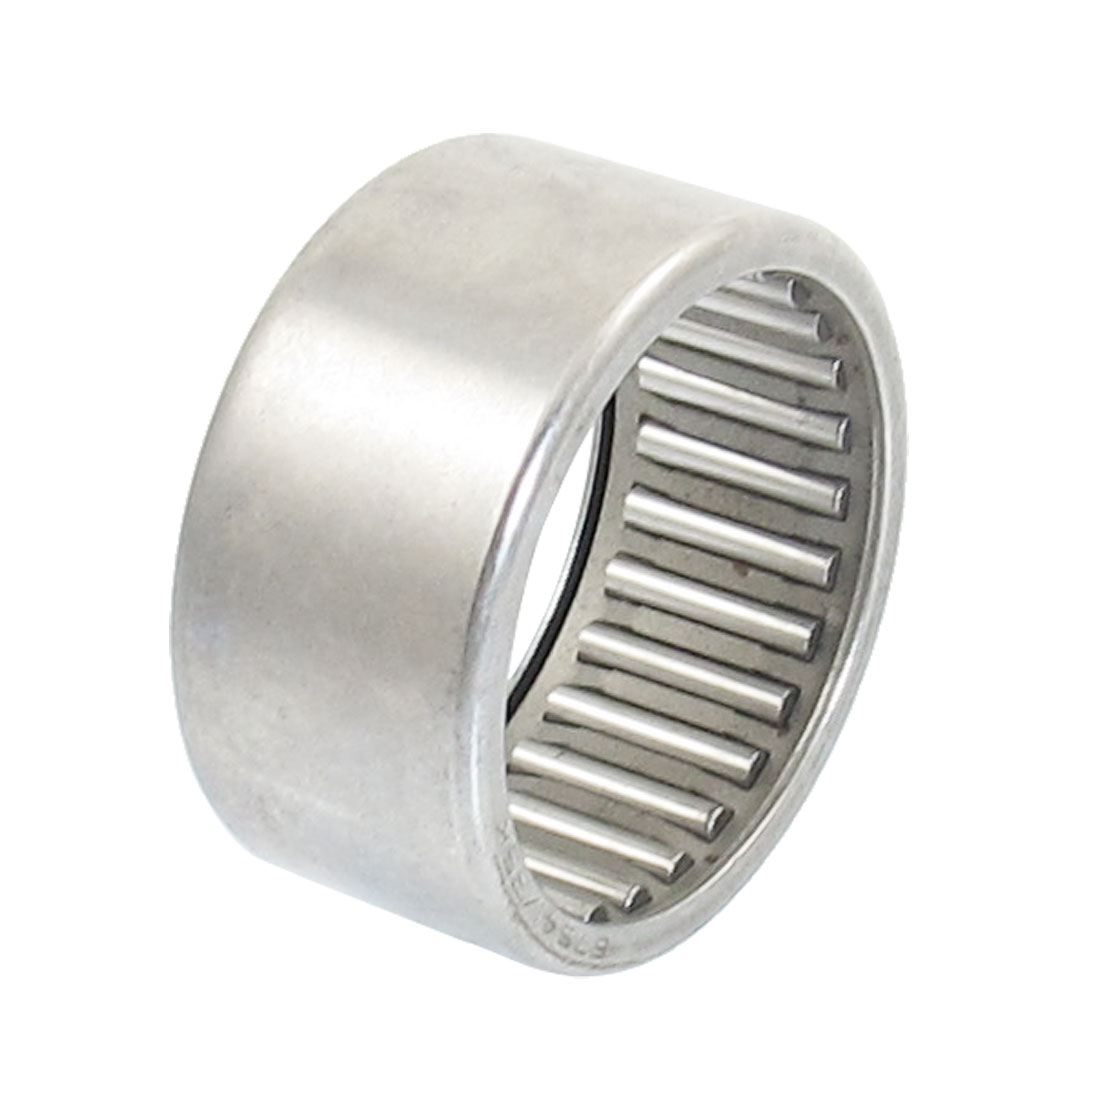 HK354220 35 x 42 x 20mm Drawn Cup Caged Drawn Cup Needle Roller Bearing